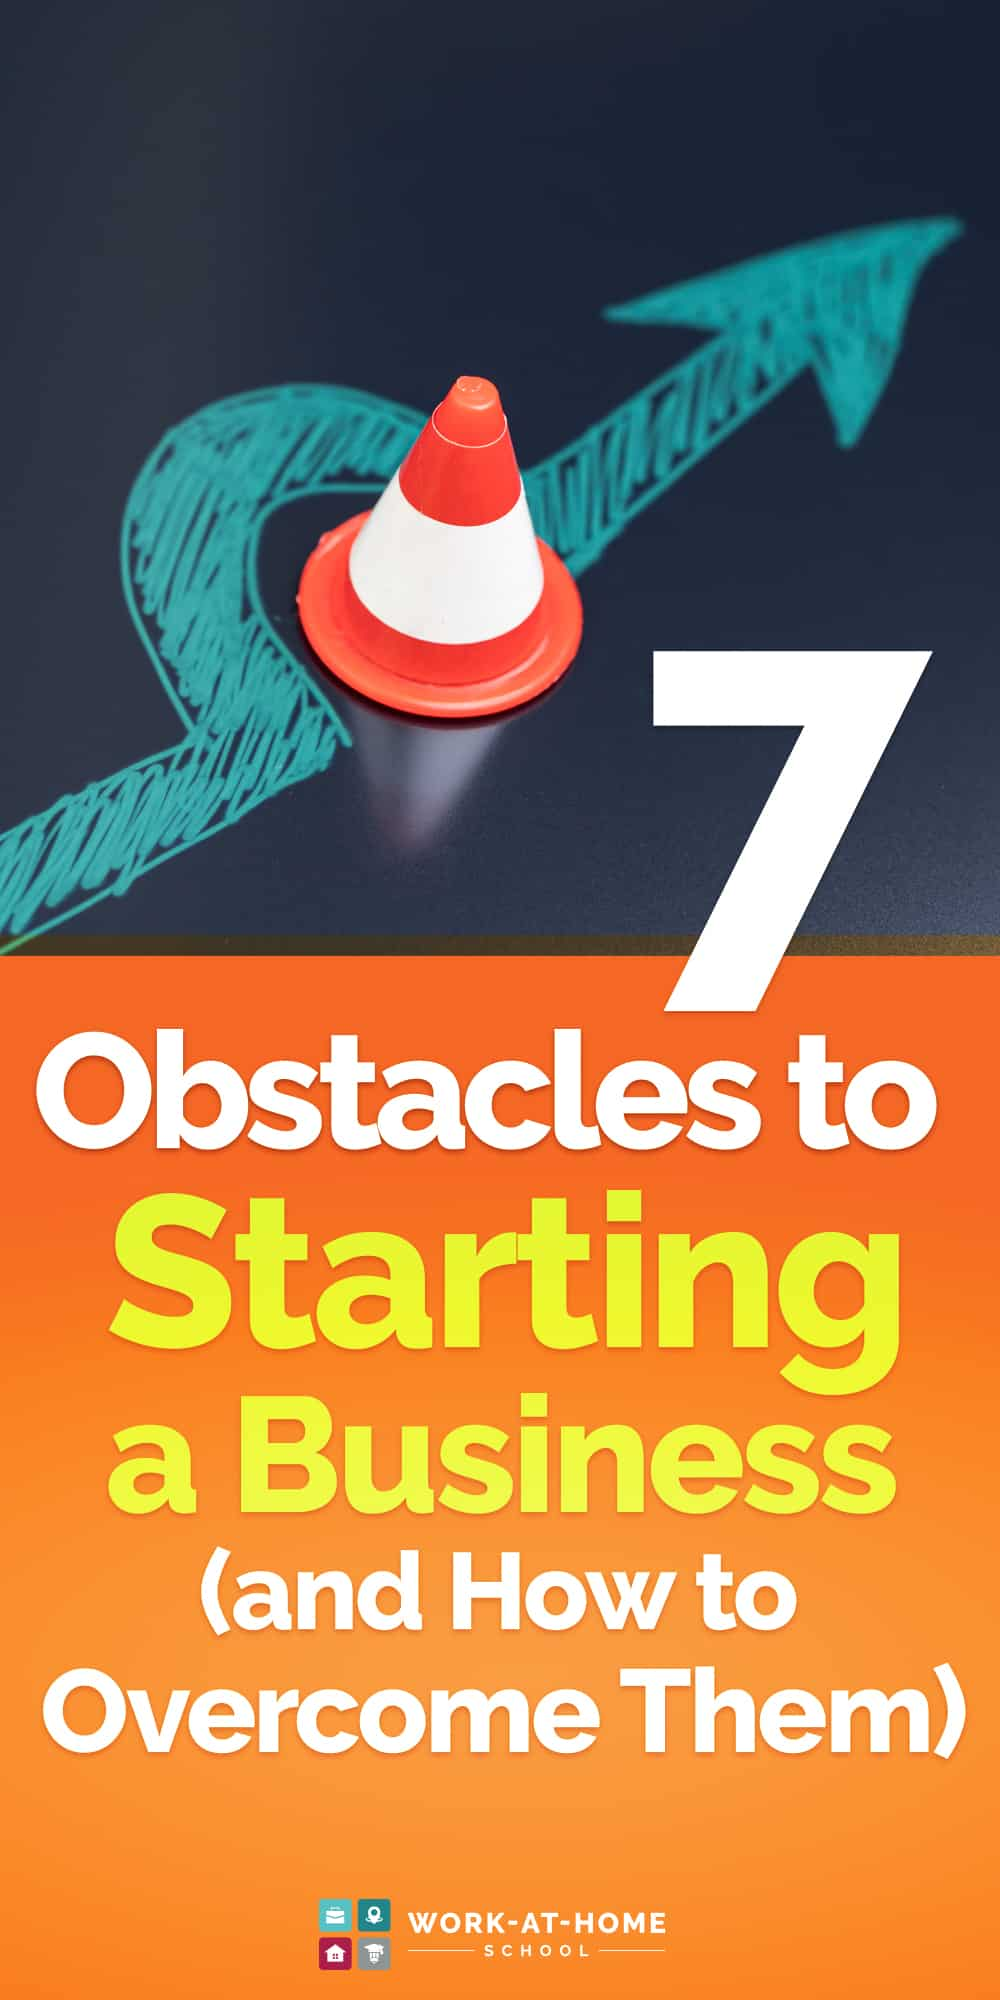 Top tips for how to overcome these common obstacles to starting a business